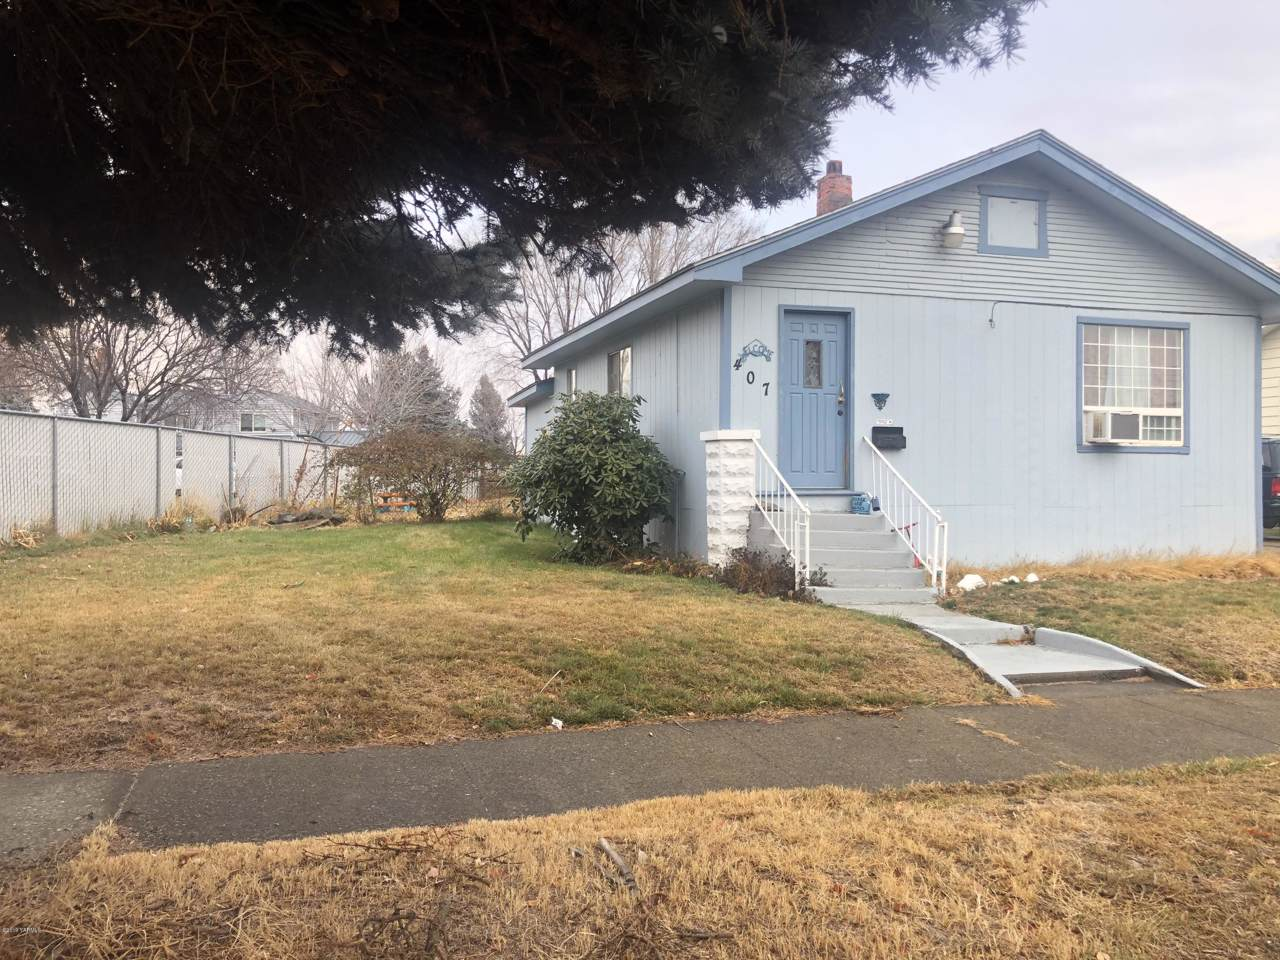 407 4th Ave - Photo 1